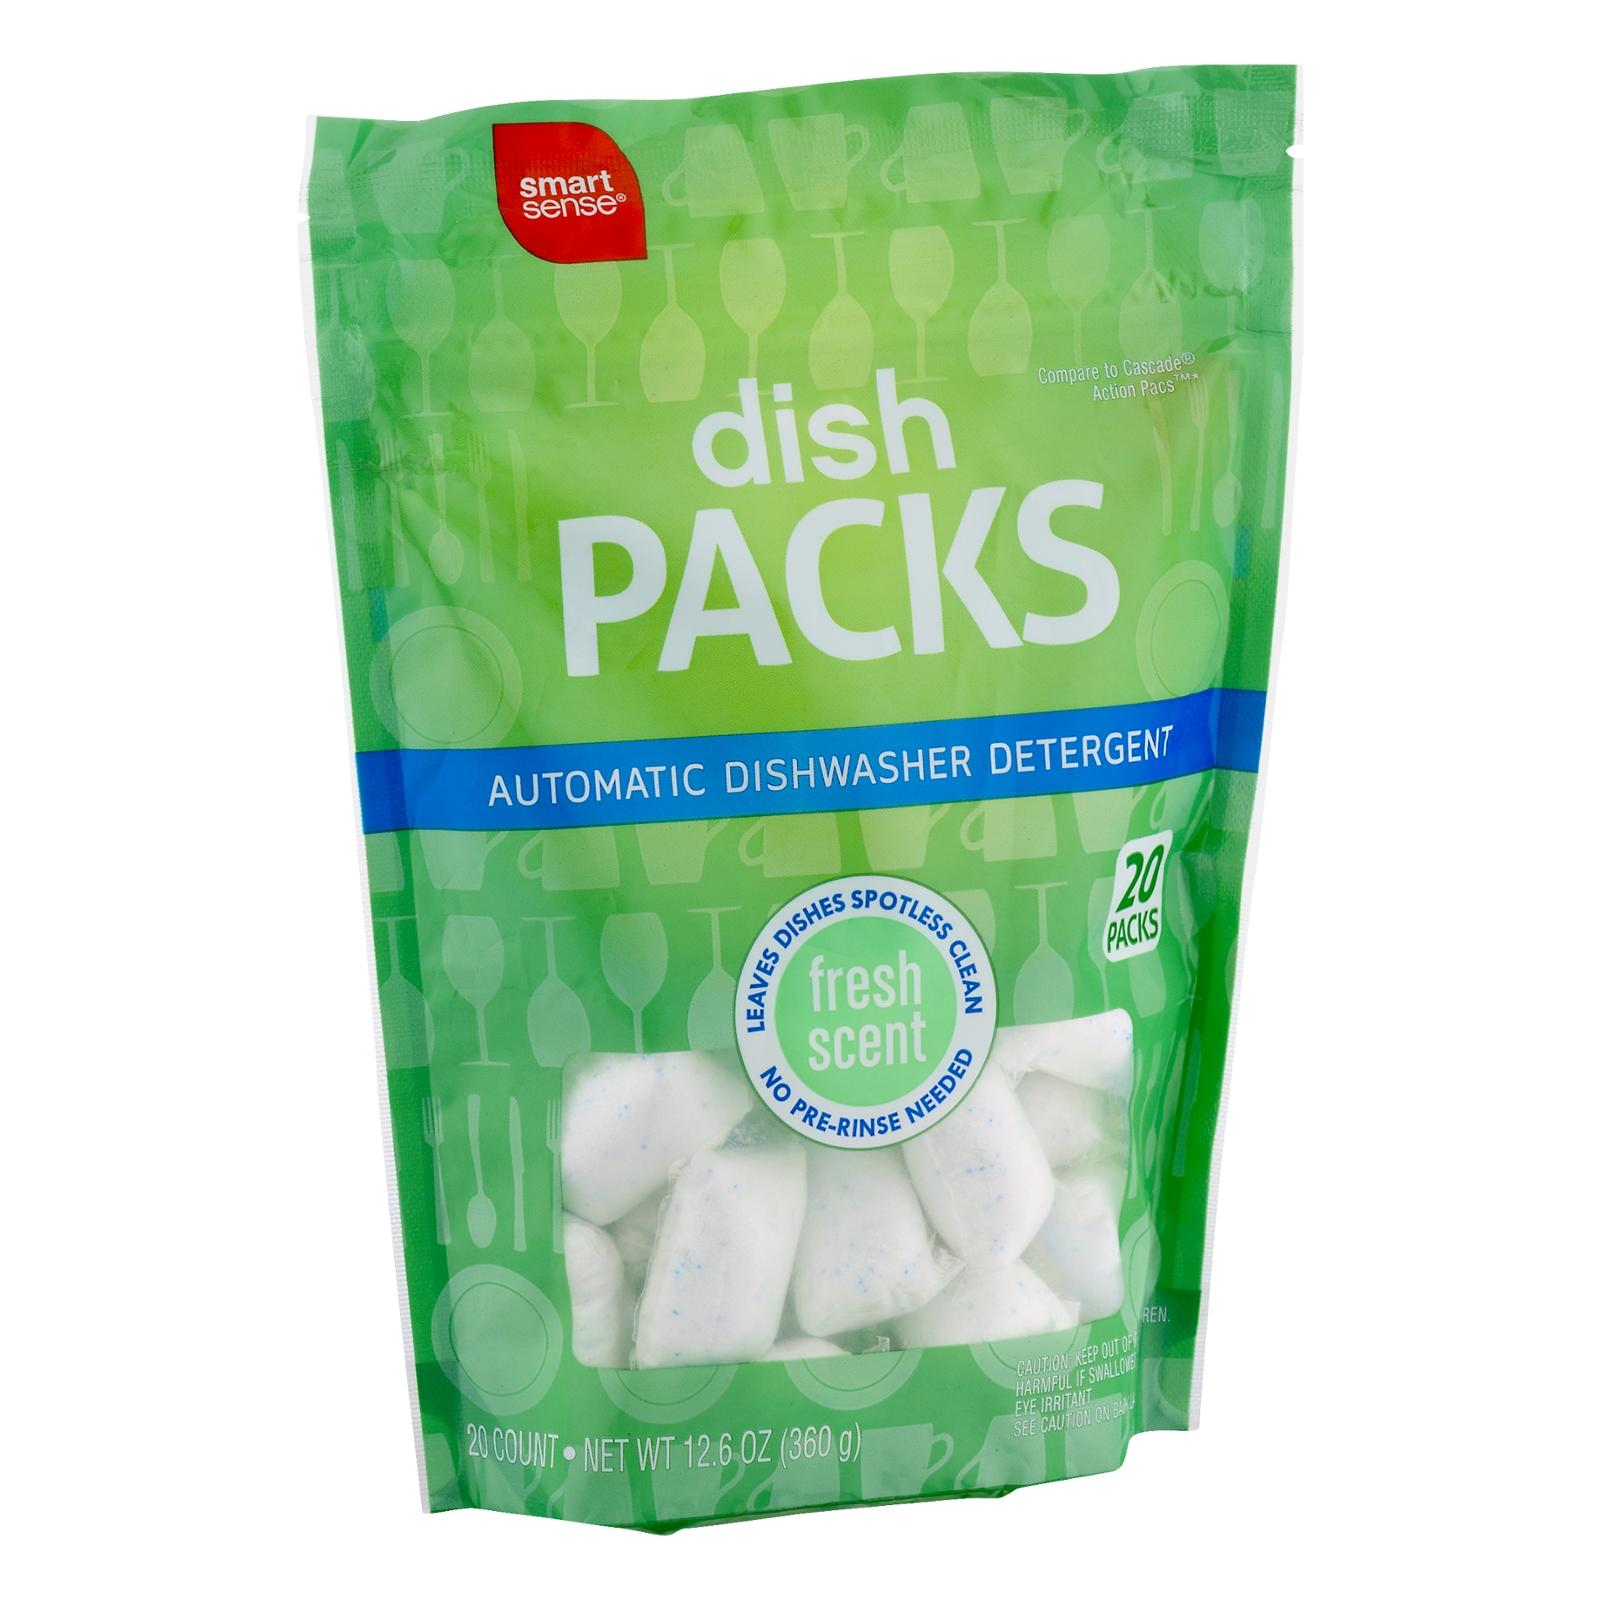 Smart Sense Dish Packs Automatic Dishwasher Detergent